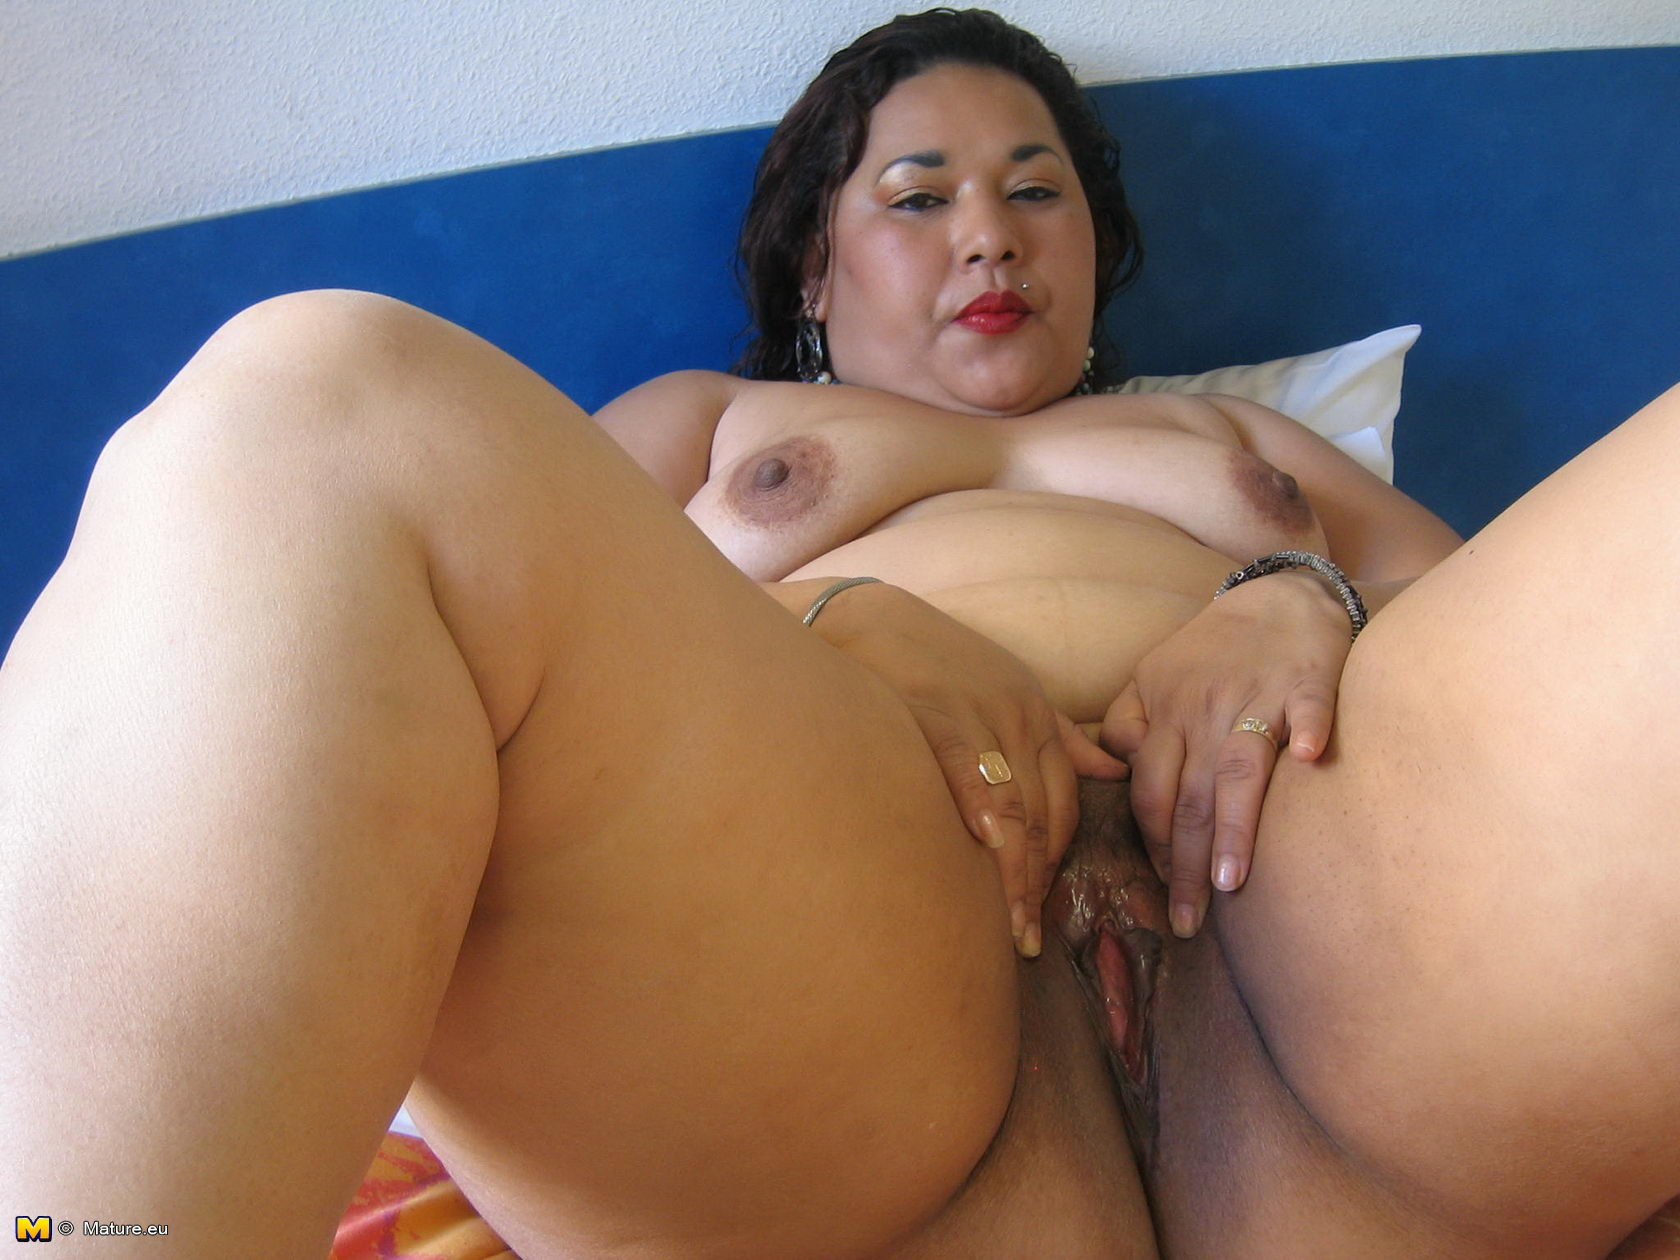 Asian mature pussy agree, very